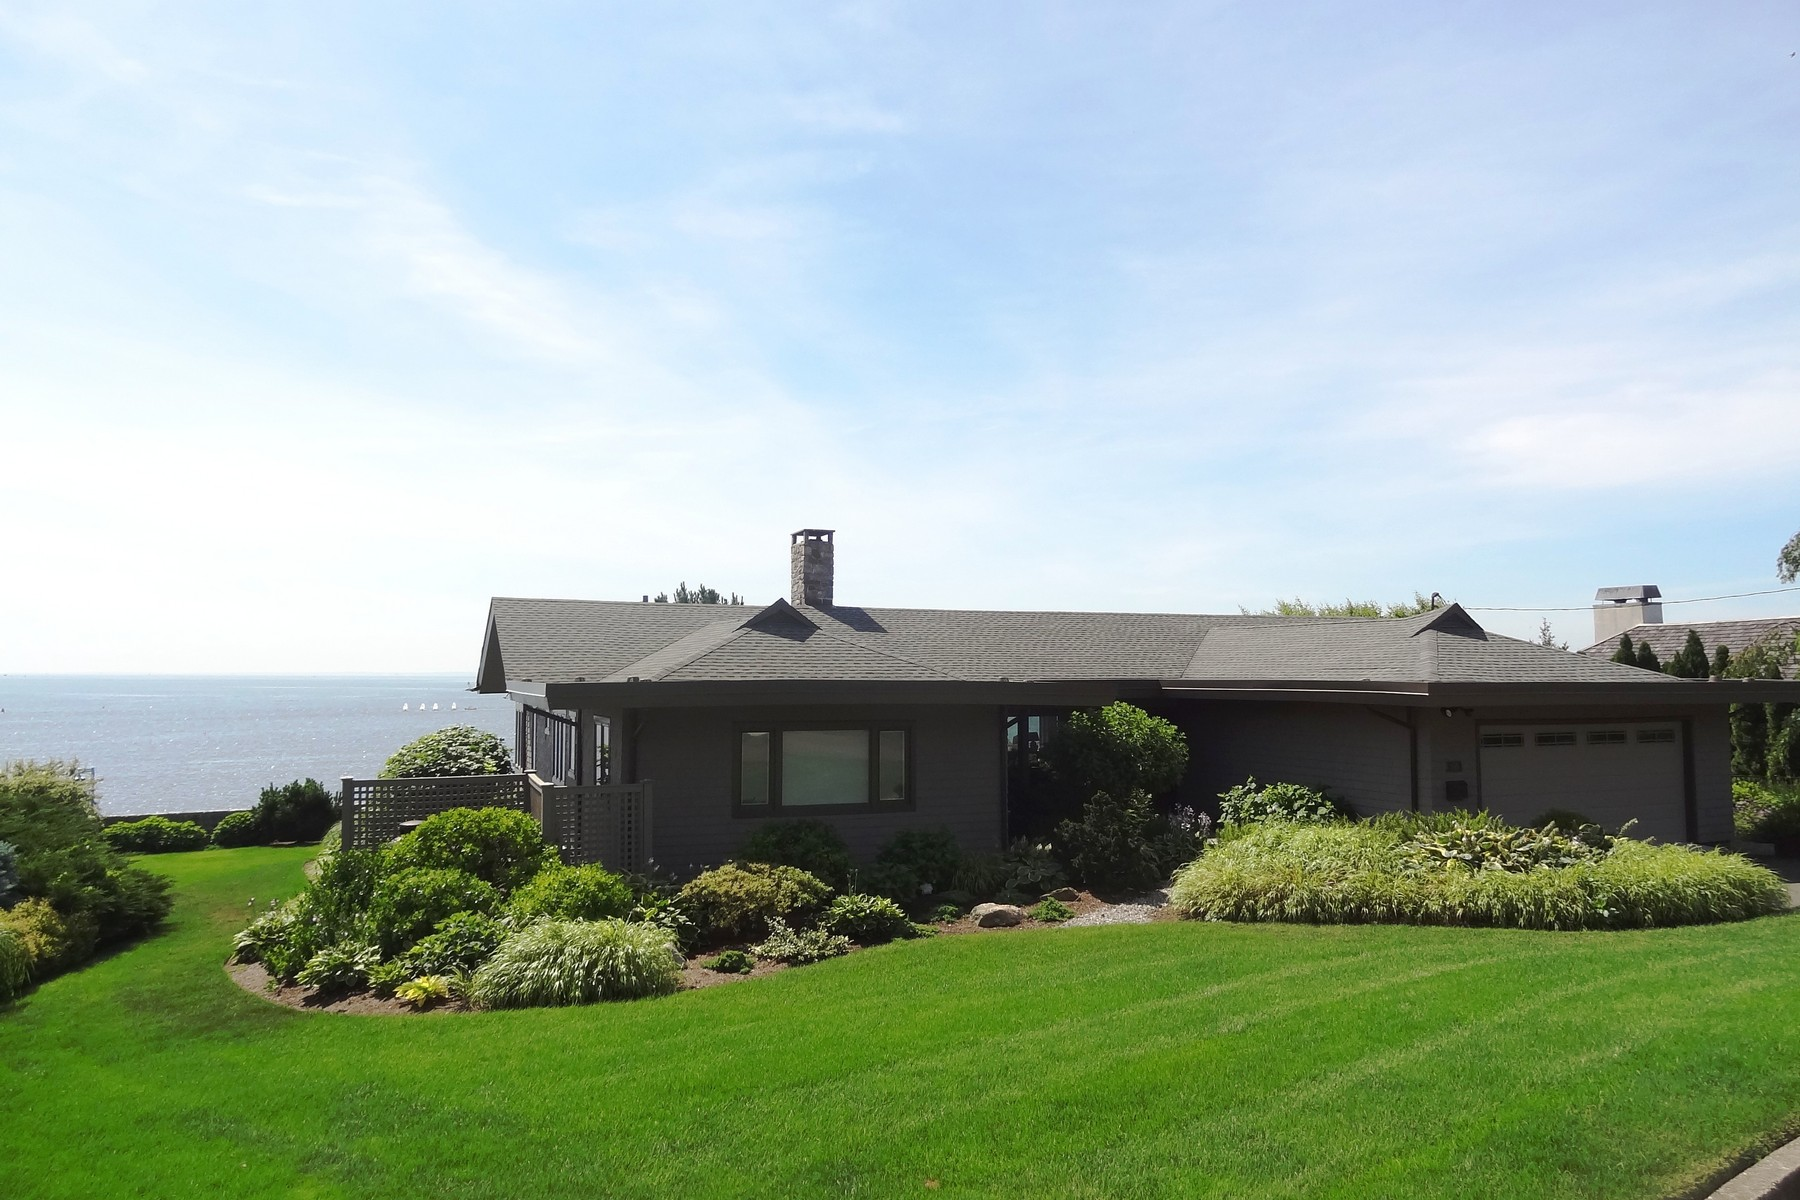 Villa per Vendita alle ore Views, Views, Views from Dramatic Ranch Style Home with Contemporary Flair 105 Battery Park Drive Bridgeport, Connecticut, 06605 Stati Uniti